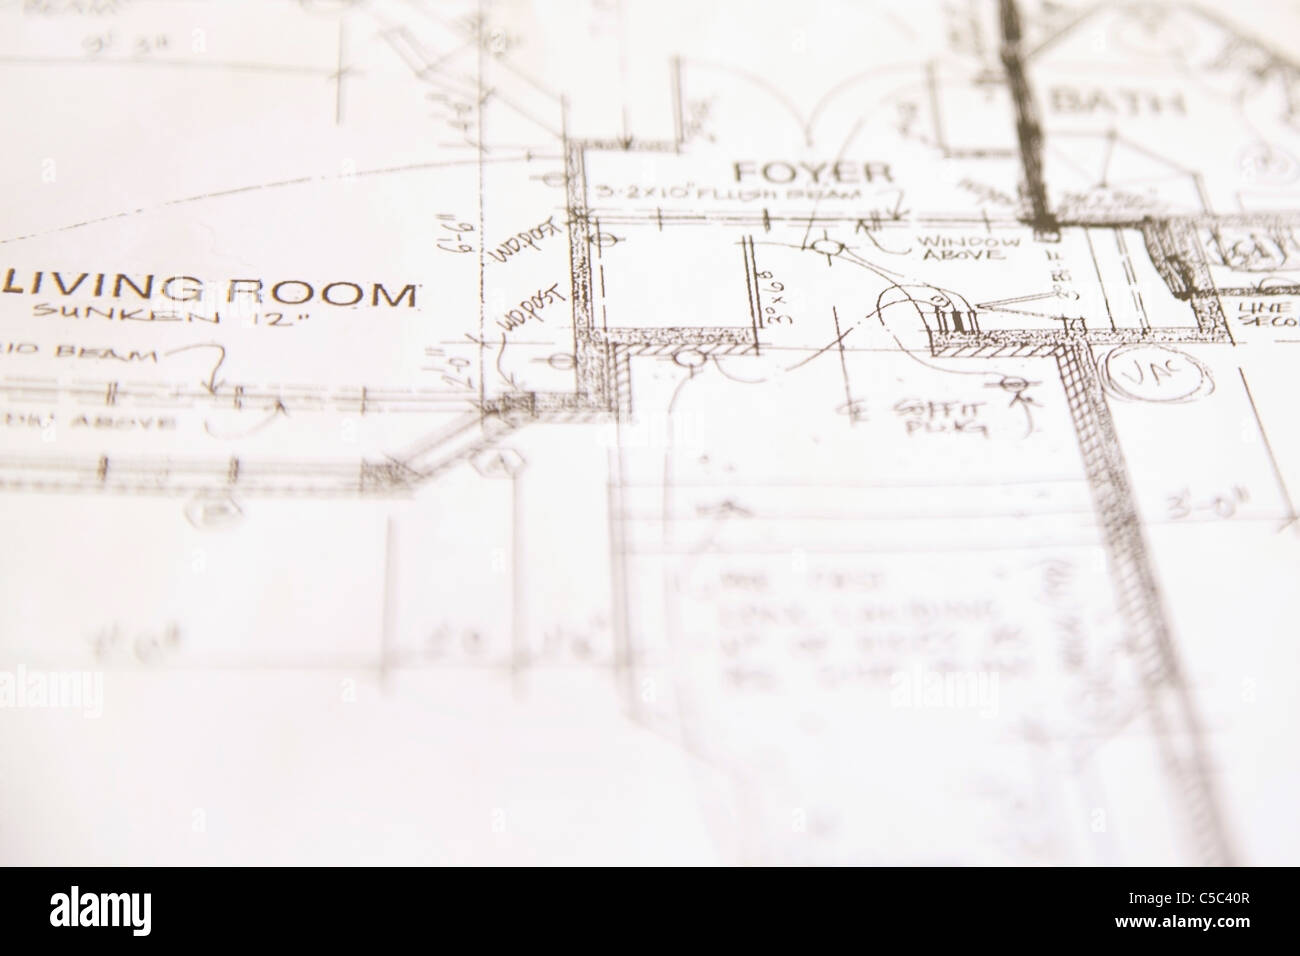 Floor Plan Stockfotos & Floor Plan Bilder - Alamy